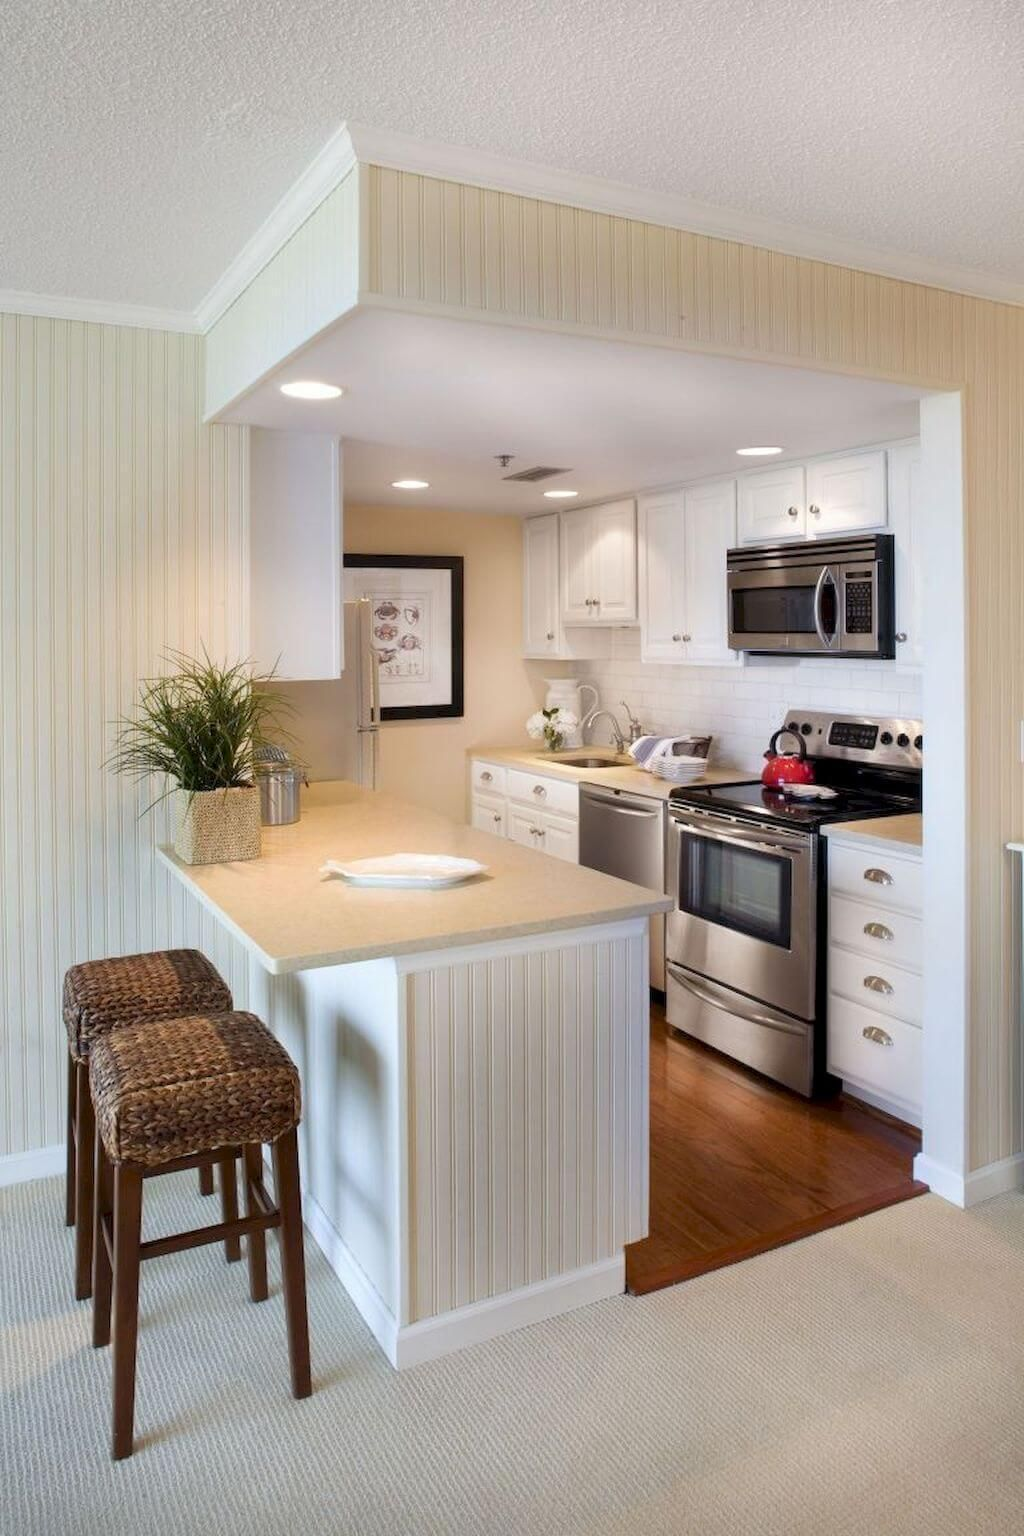 49 Small Kitchen Ideas That Will Make You Feel Roomy Amenagement